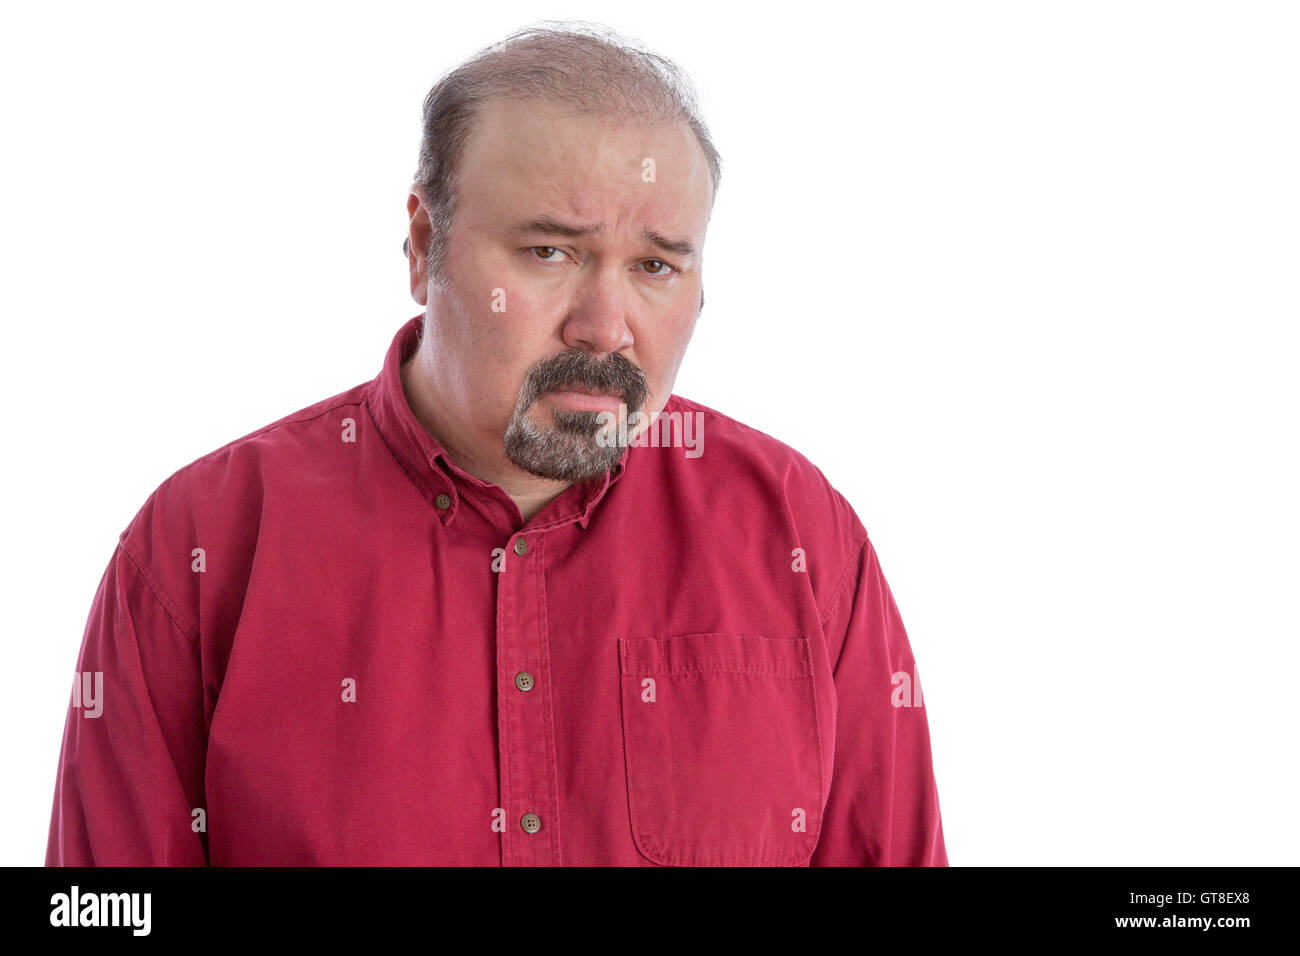 Upset and disappointed bald frowning middle-aged man looking at camera with a depressed facial expression, isolated - Stock Image